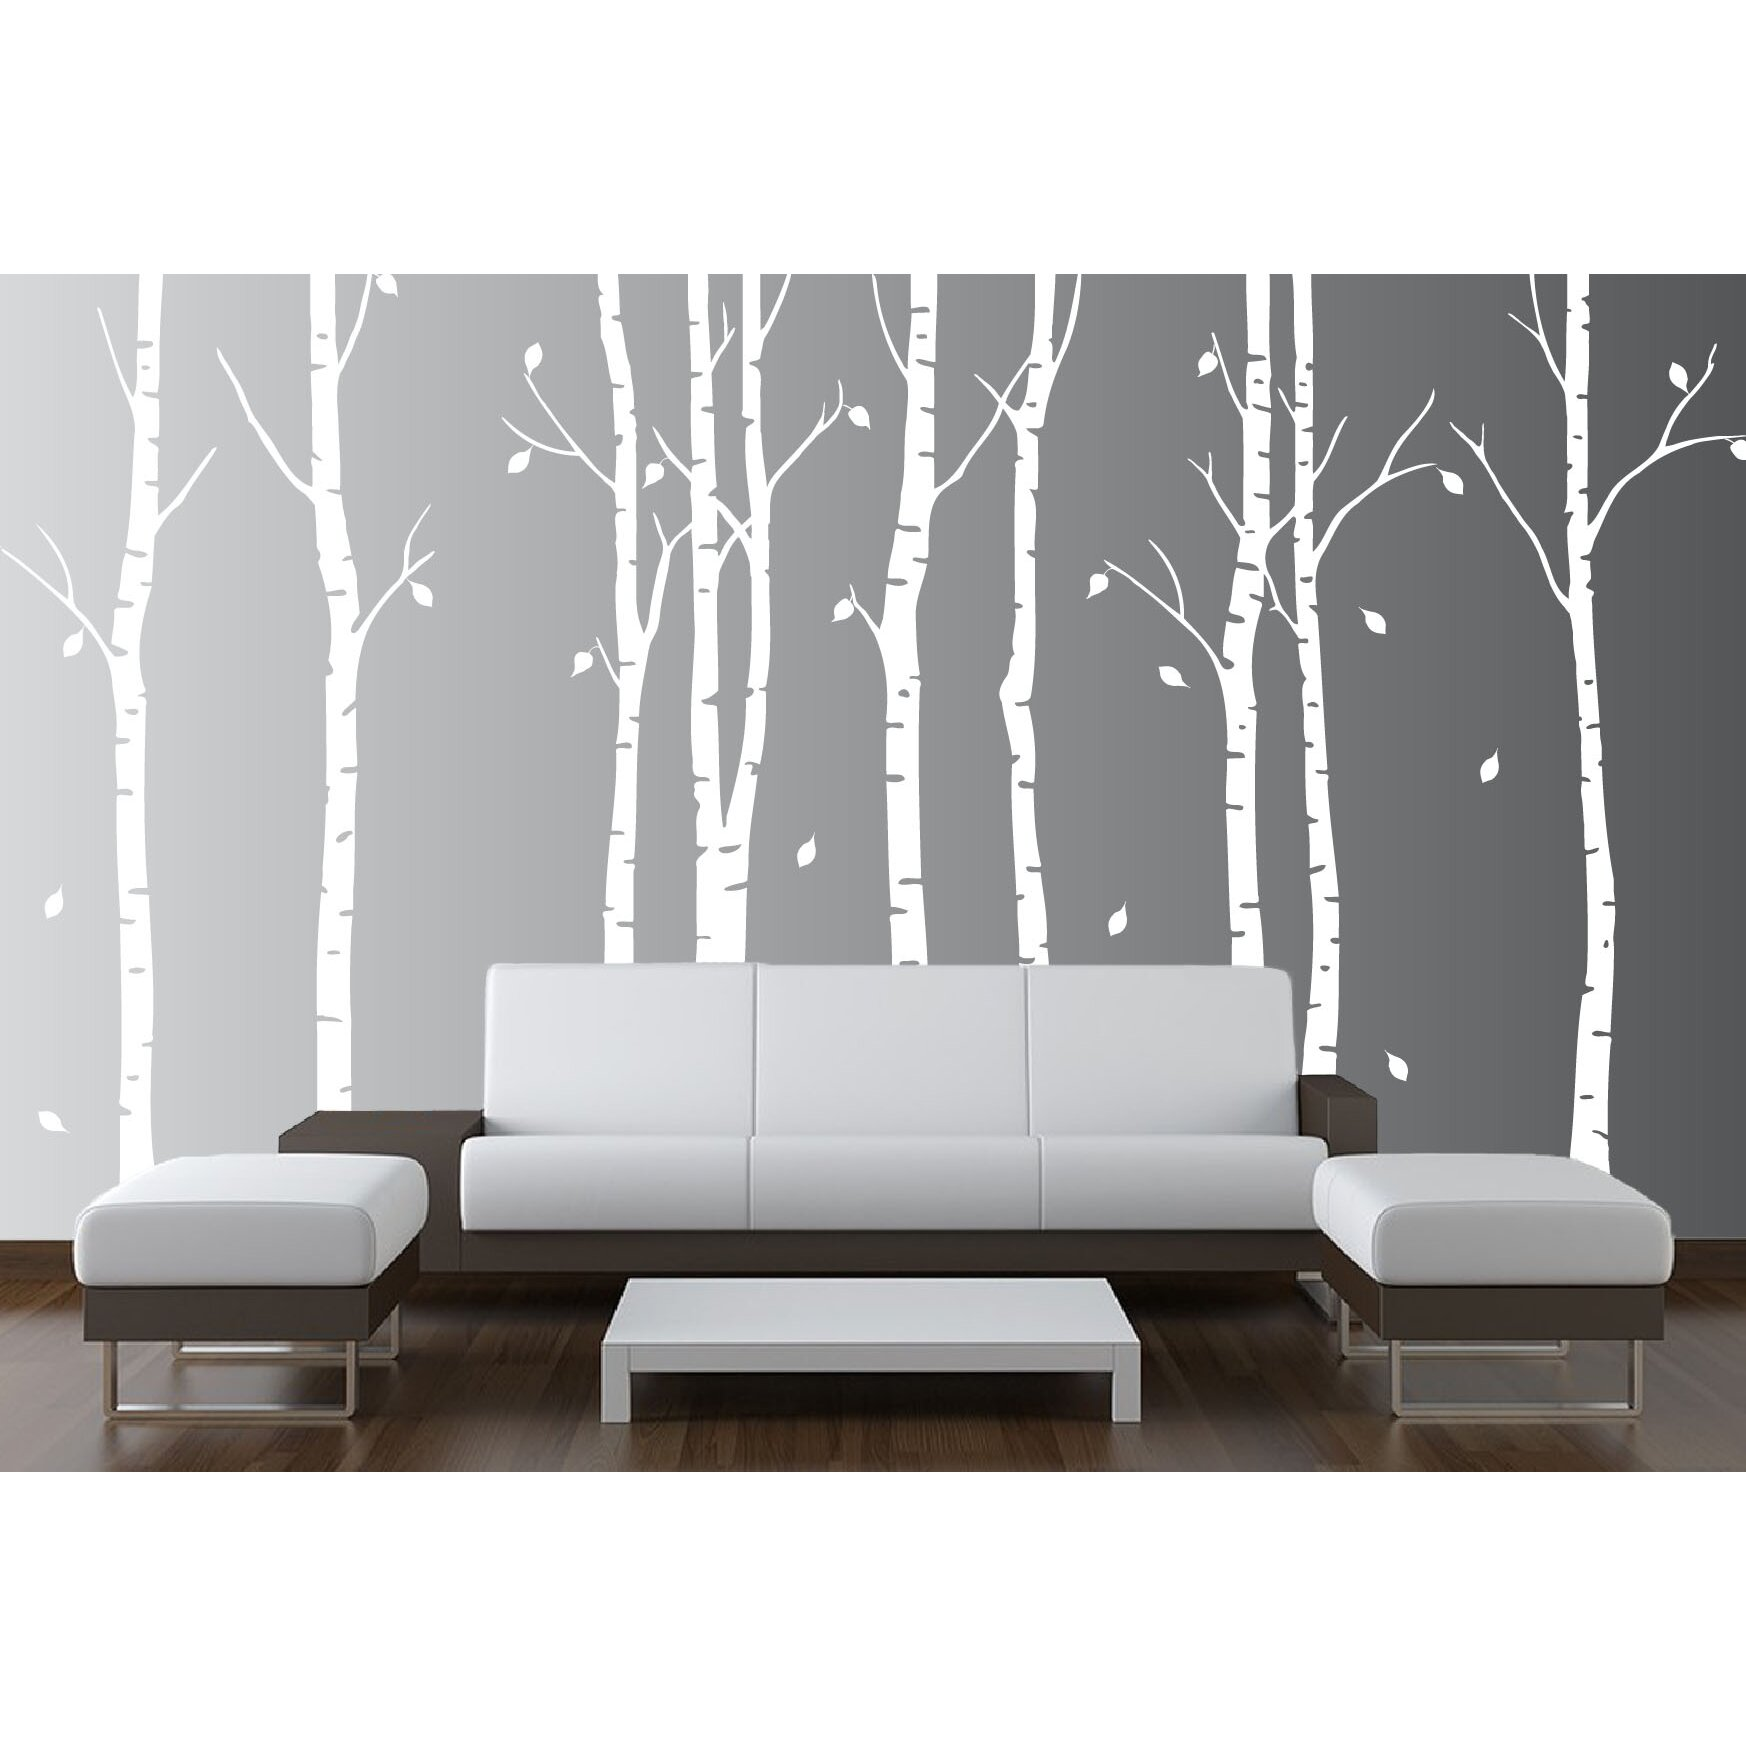 innovative stencils birch tree nursery forest vinyl sticker wall decal reviews wayfair. Black Bedroom Furniture Sets. Home Design Ideas